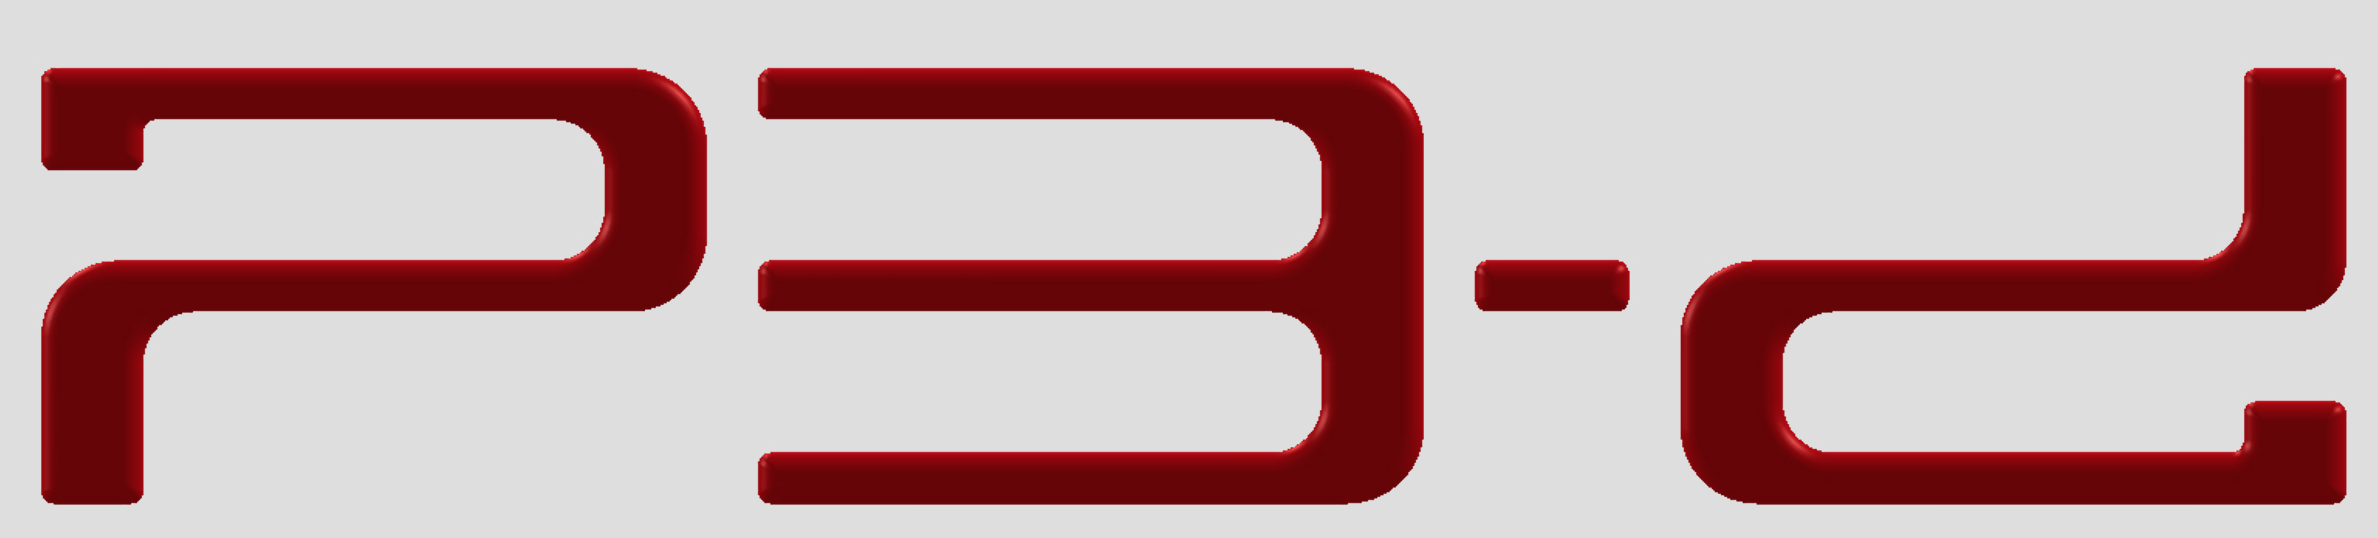 performance 3-d logo